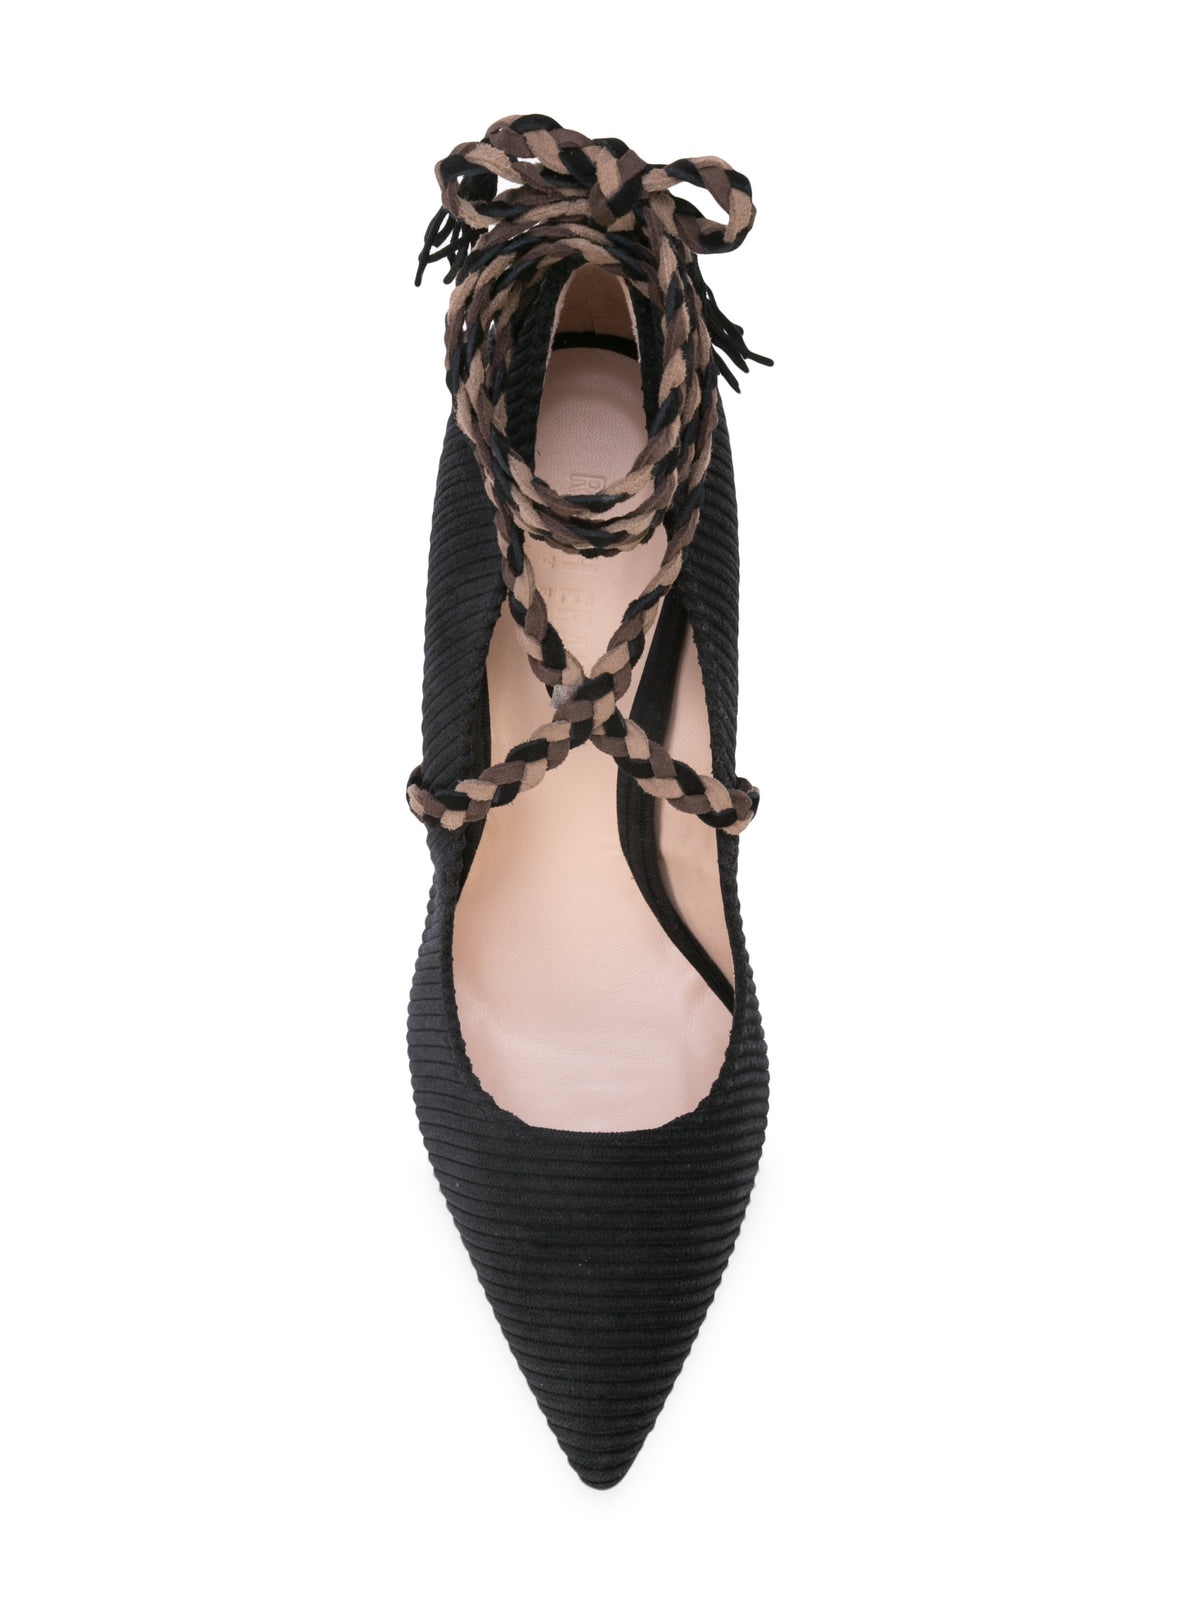 Cleopatra Pump - Black corduroy with removable suede wraps. Top View